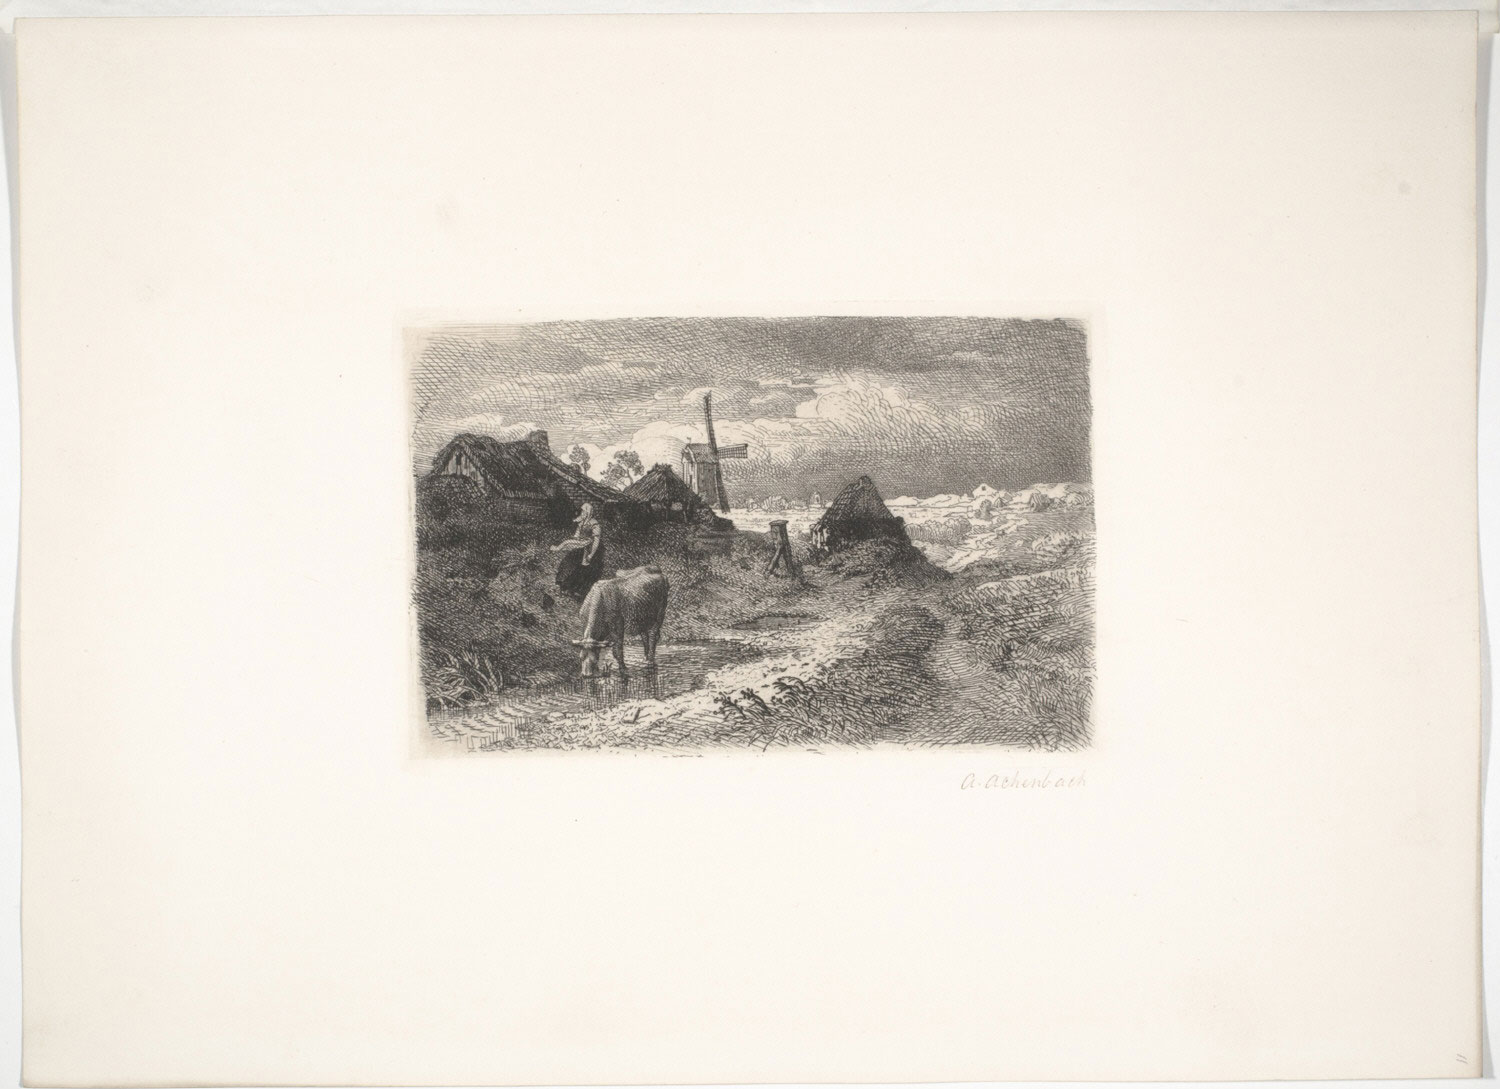 Landscape with Cow, Woman, and Windmill